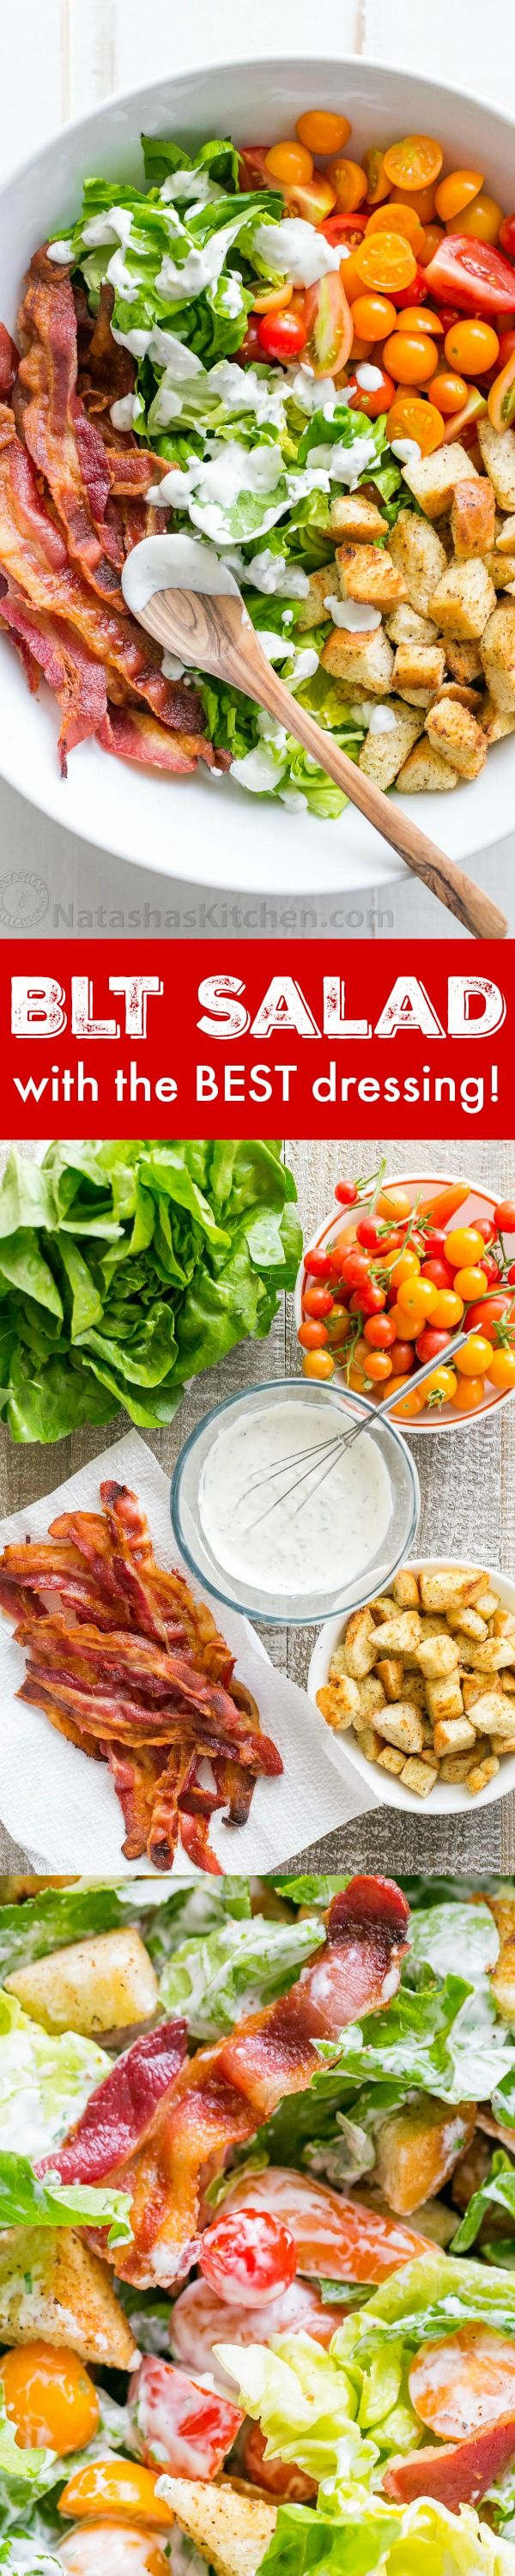 BLT Salad Recipe with the Best Dressing